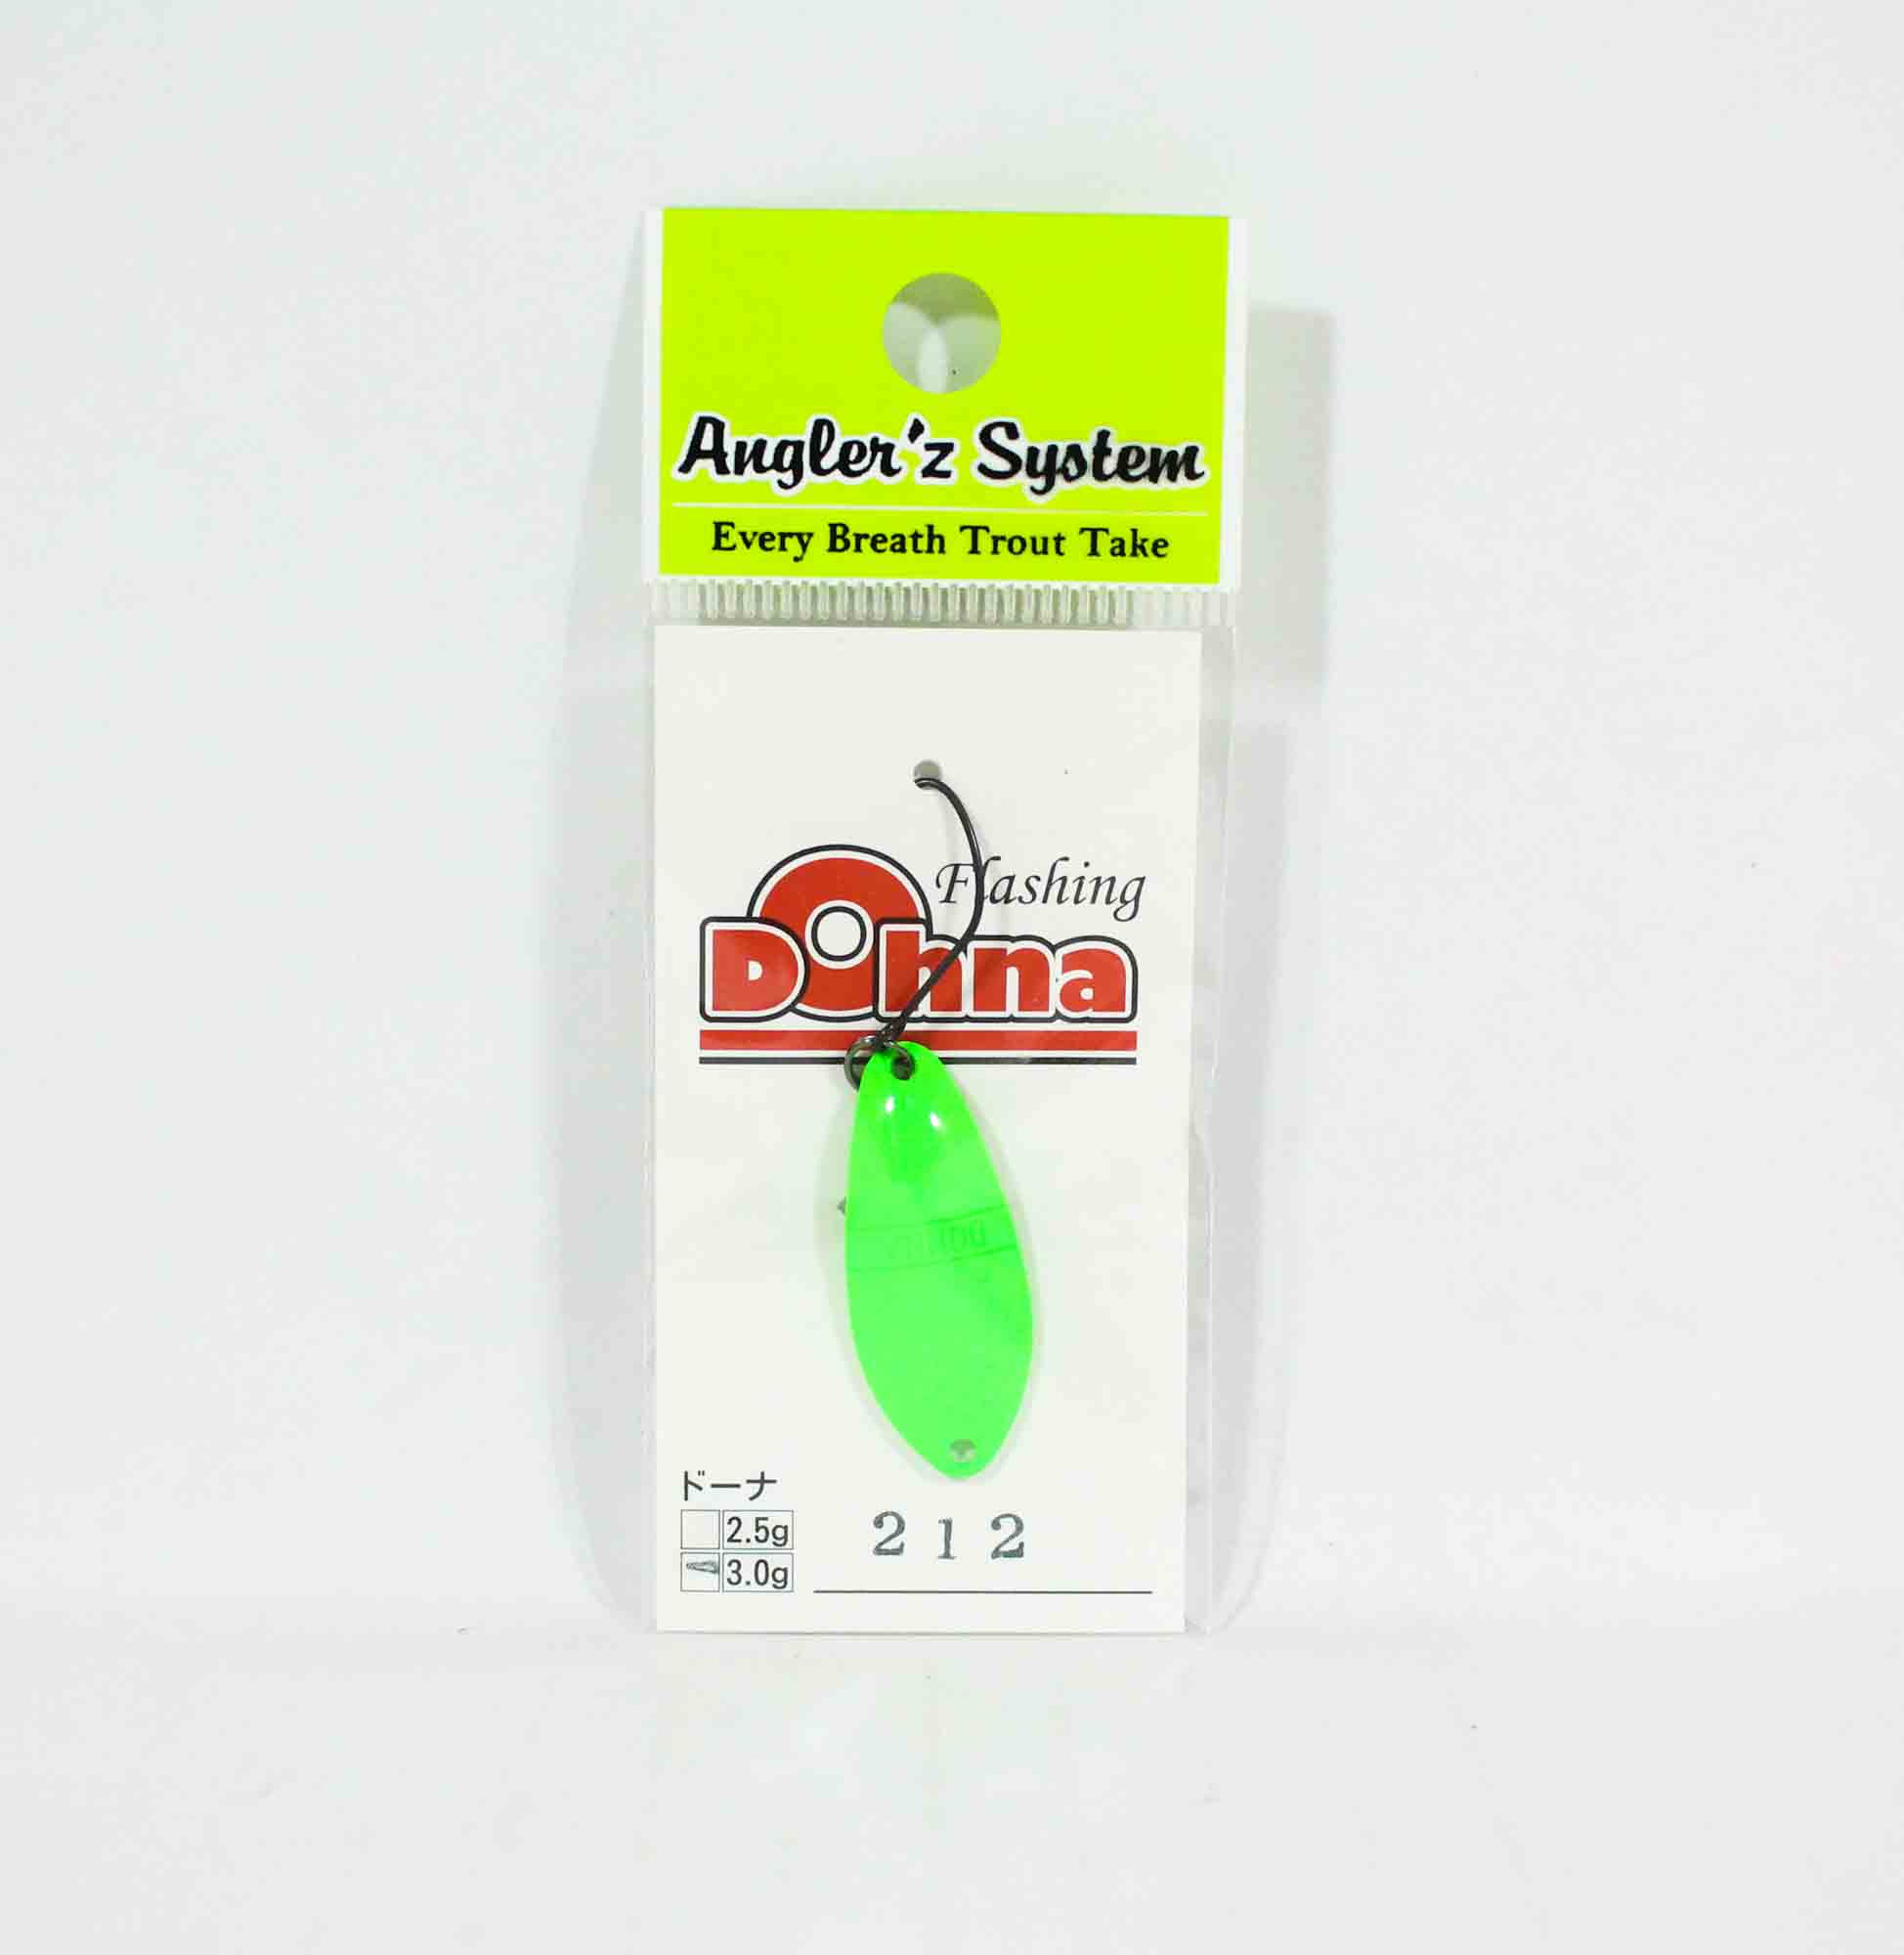 Anglers System Antem Dohna 3.0 grams Spoon Sinking Lure 212 (3940)